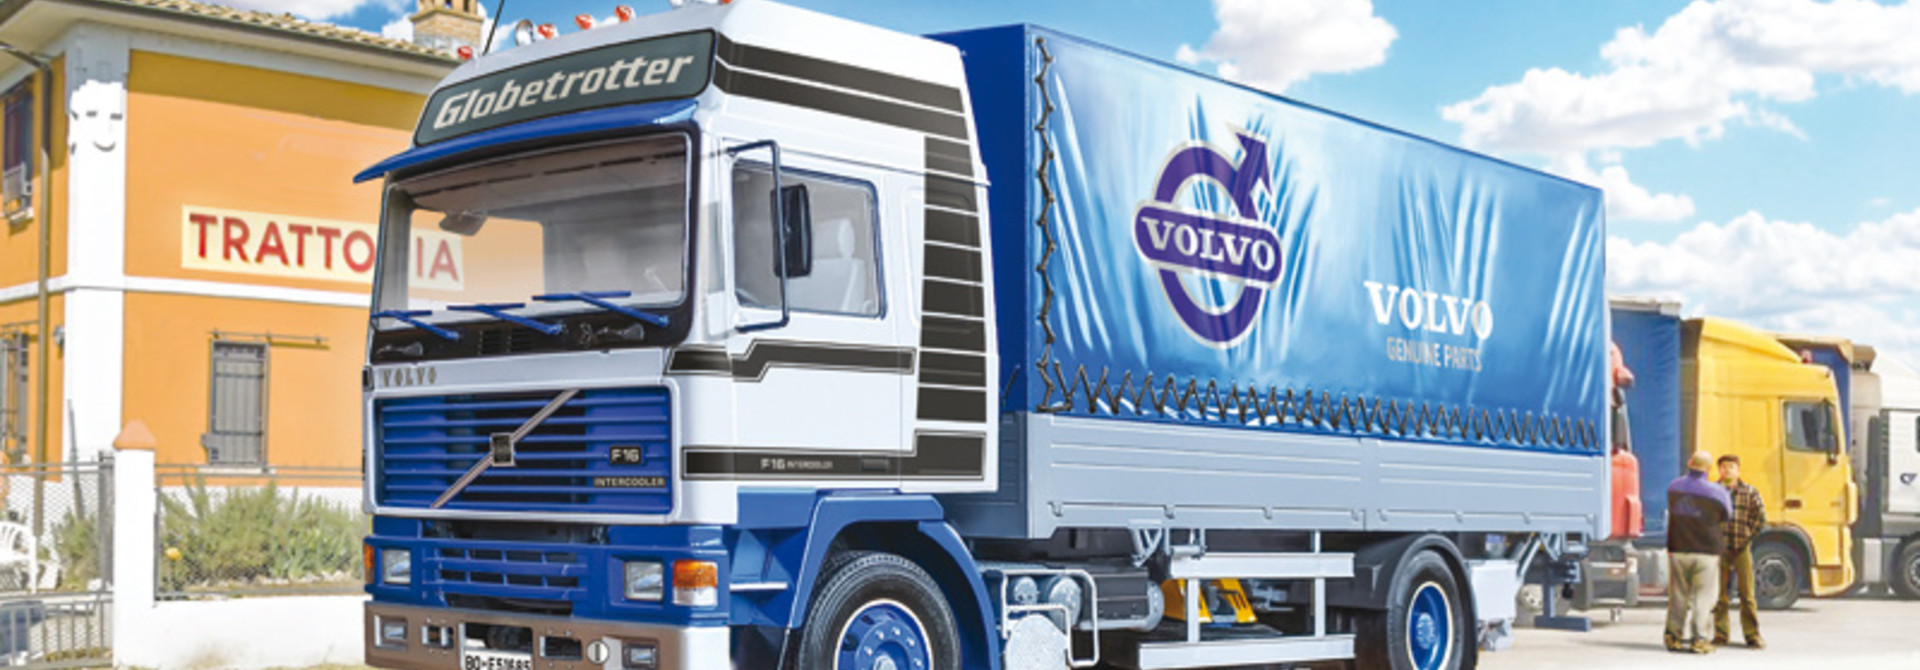 1:24 VOLVO F16 Globetrotter Canvas Truck with elevator